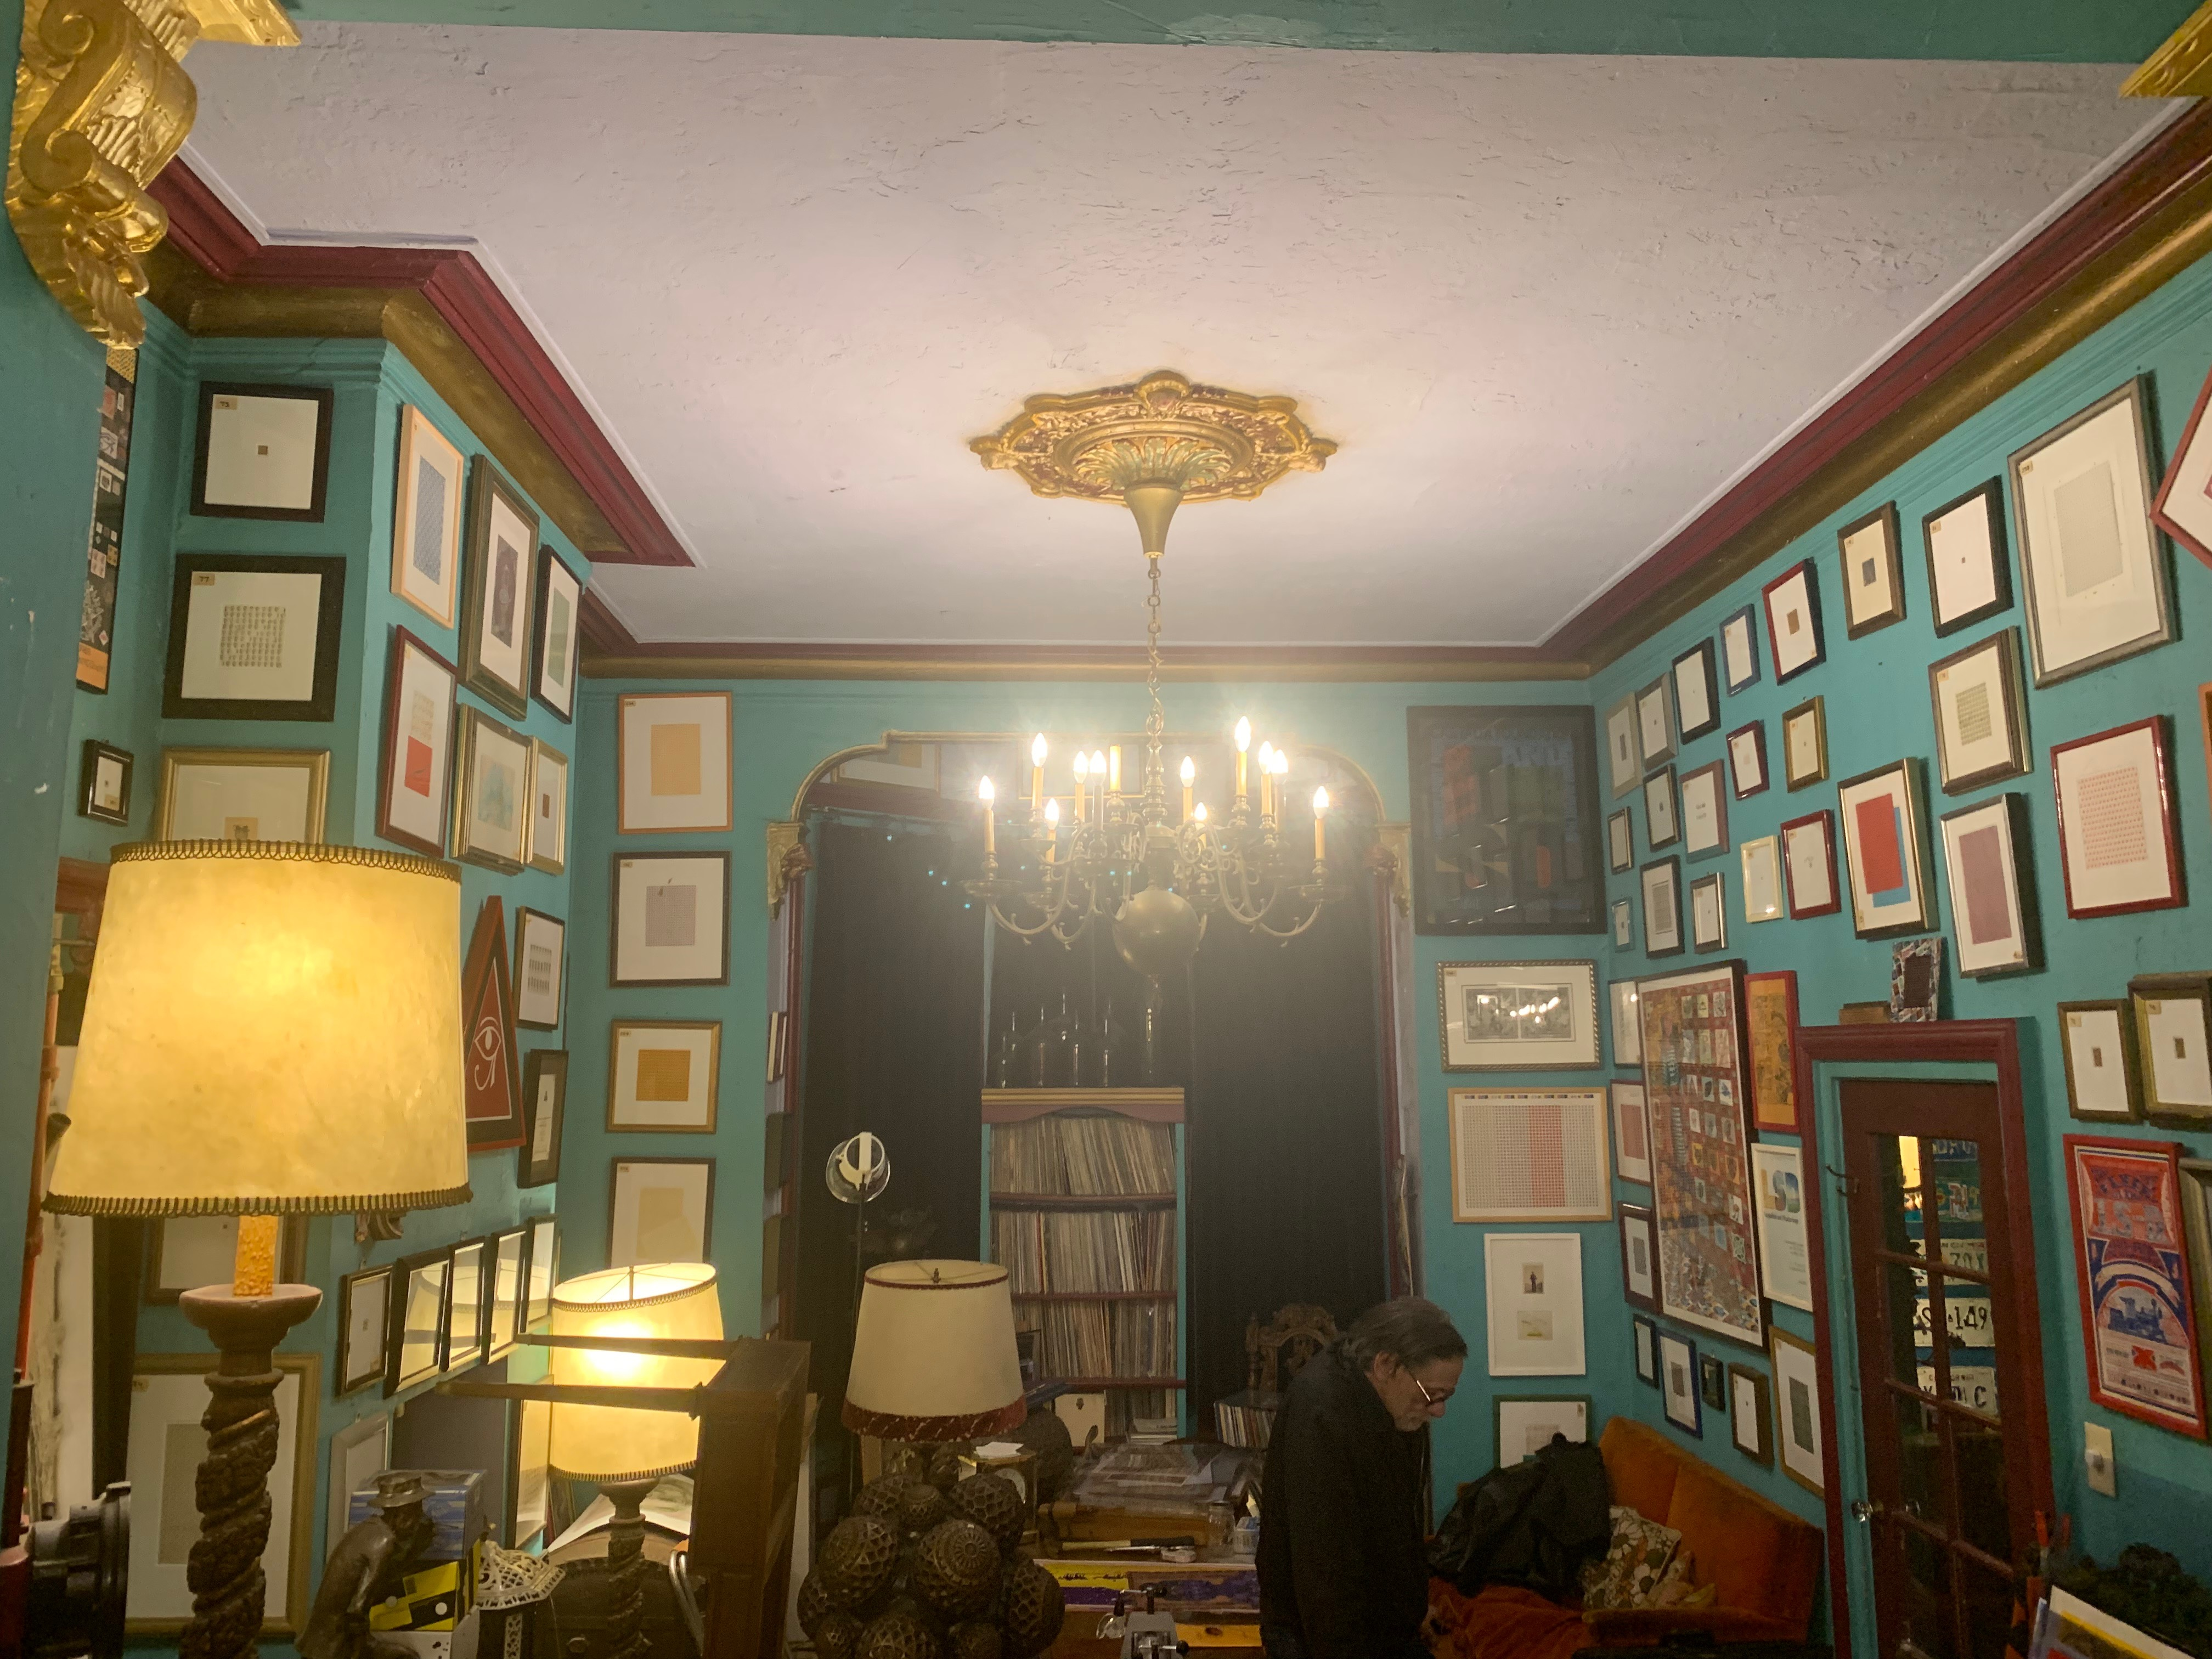 Mark McCloud's living room with walls adorned with blotter art.